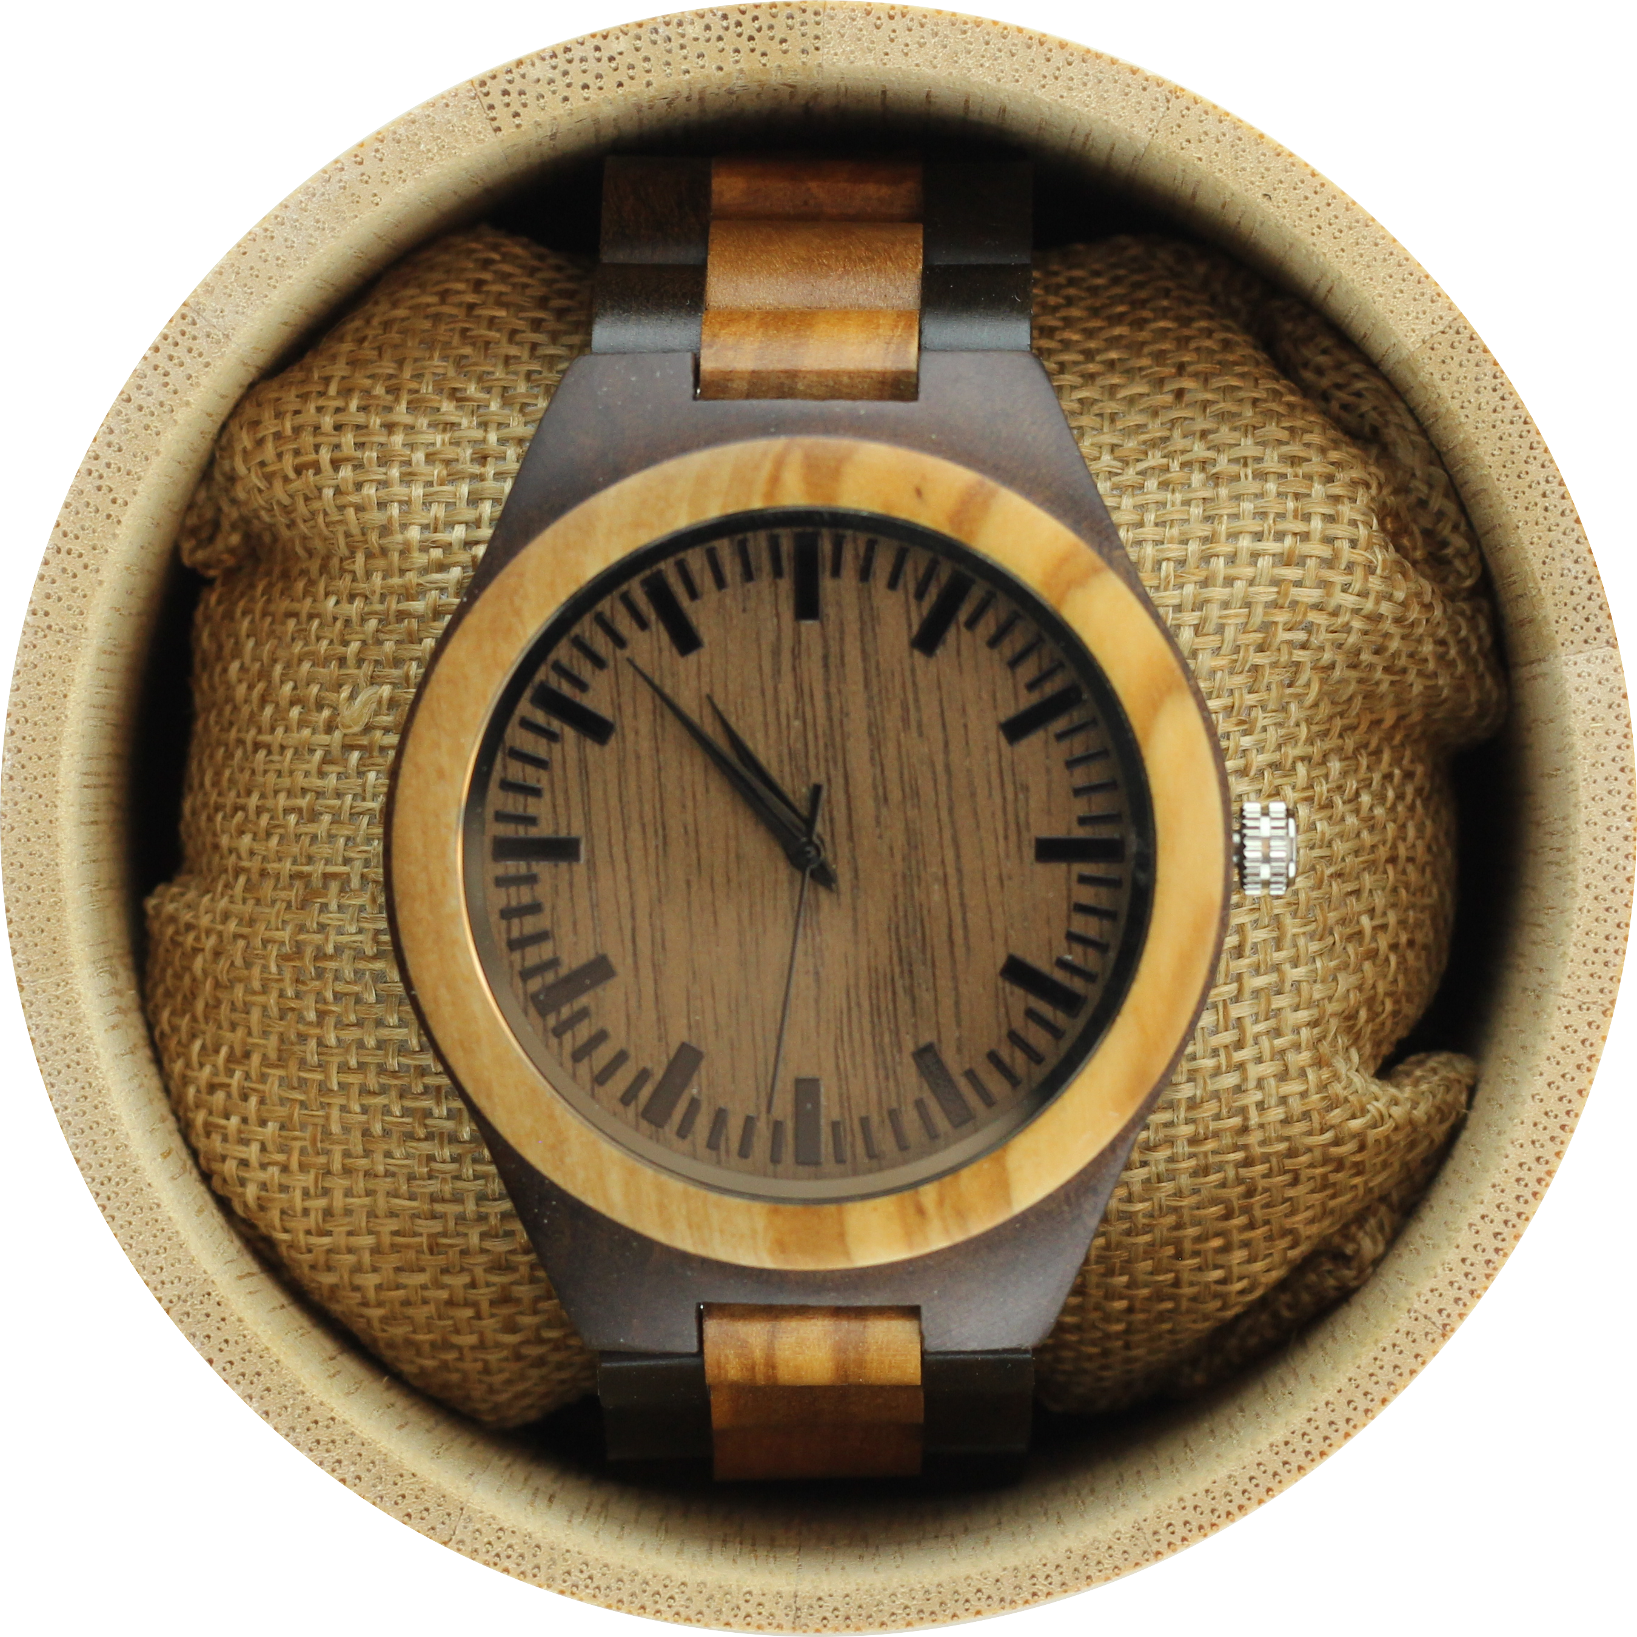 Angie Wood Creations Olive Wood Men's Watch With Olive Wood Bracelet - image 7 of 7